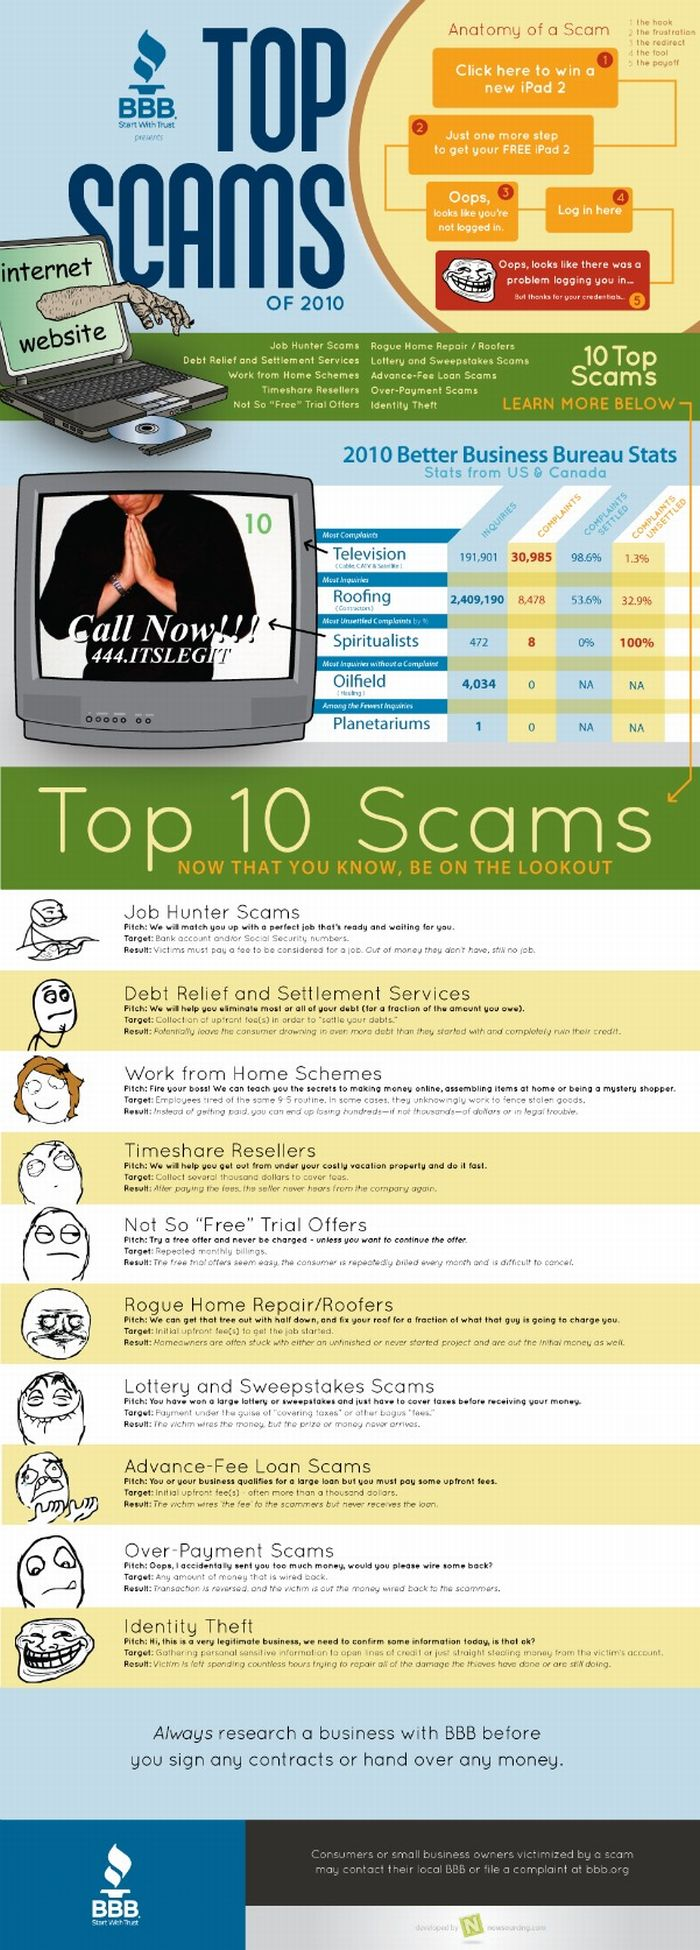 Top Online Scams (infographic)